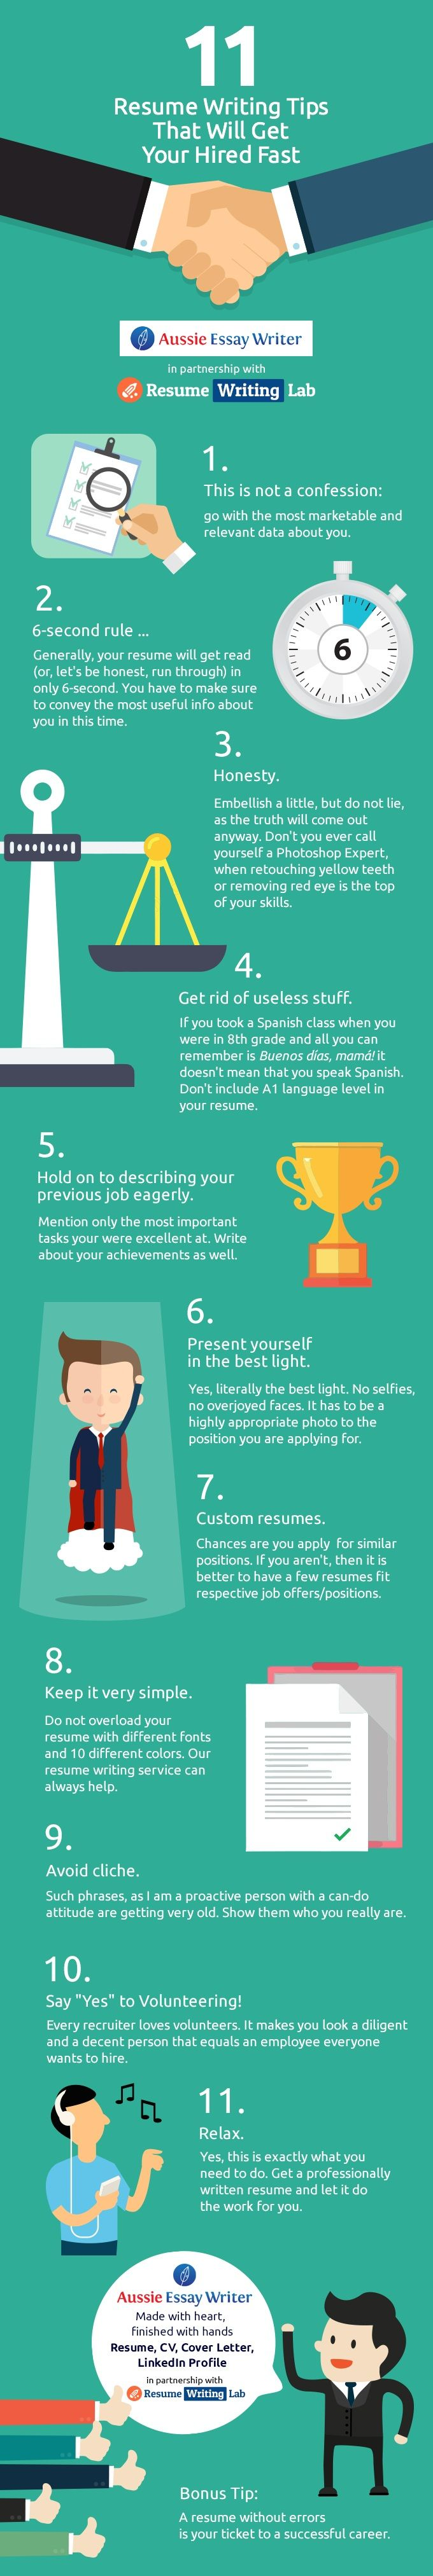 11 resume writing tips that will get you hired fast infographic http